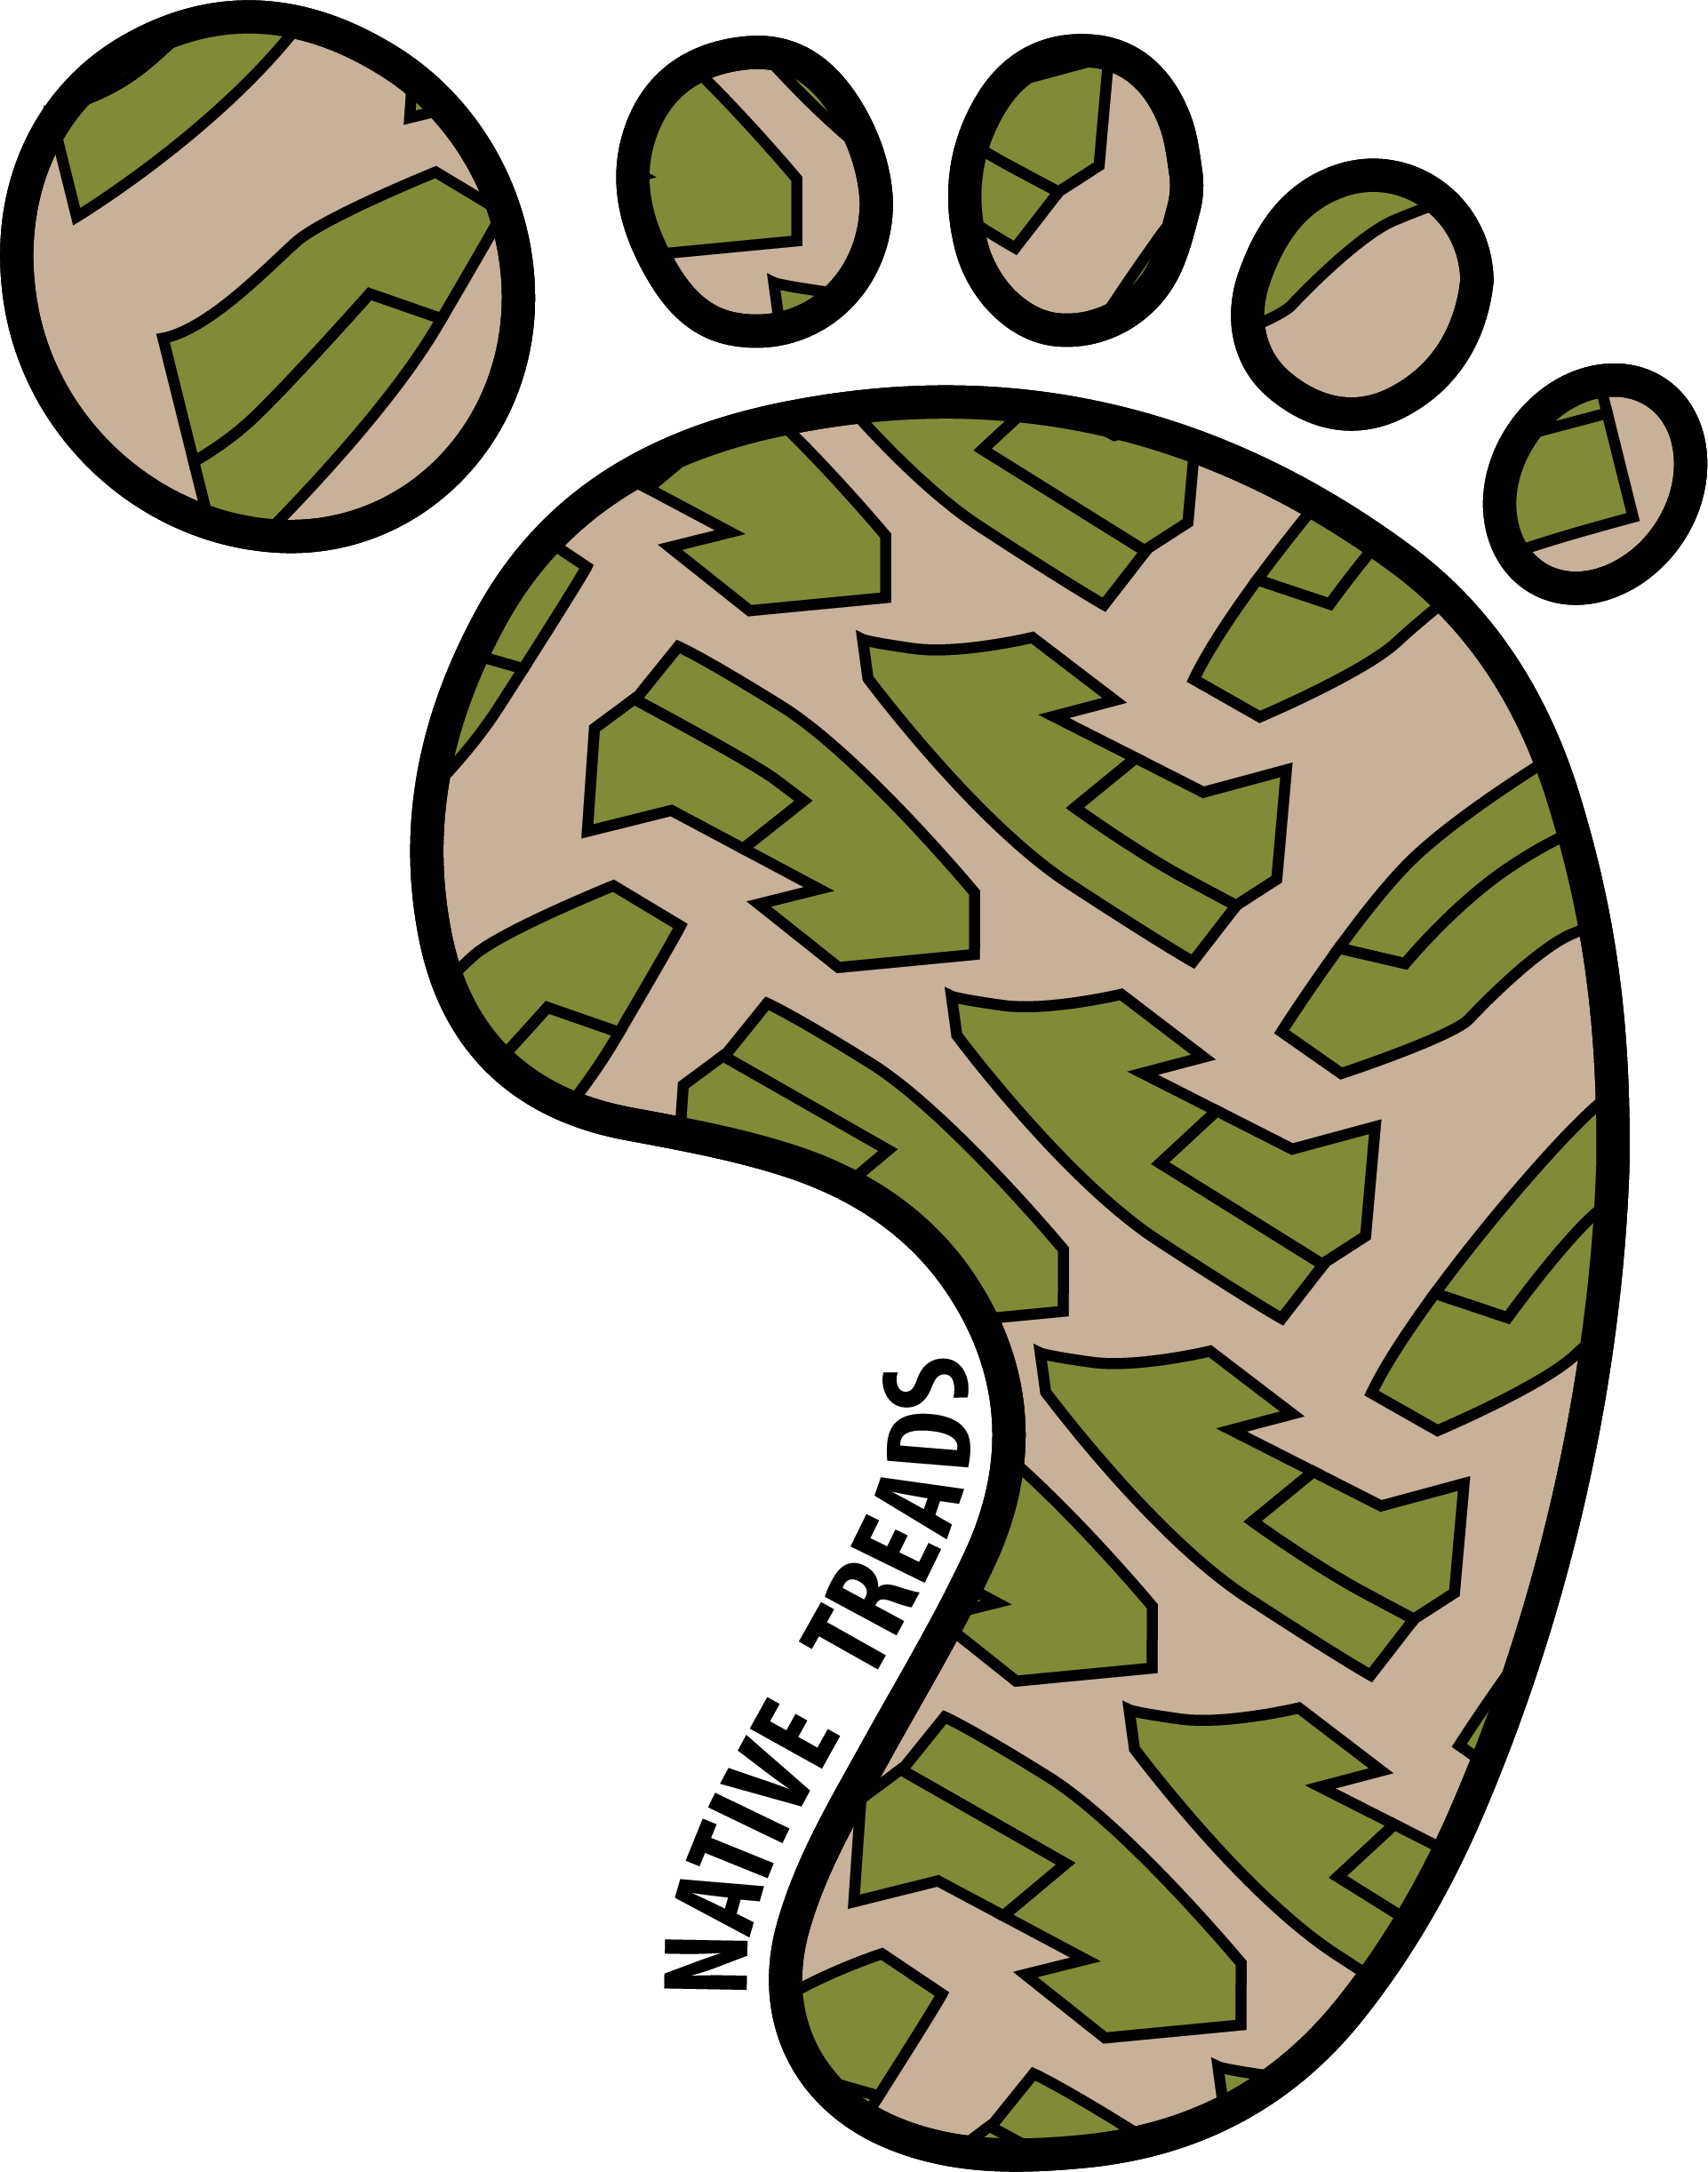 Native treads treadspng. Hike clipart boot tread